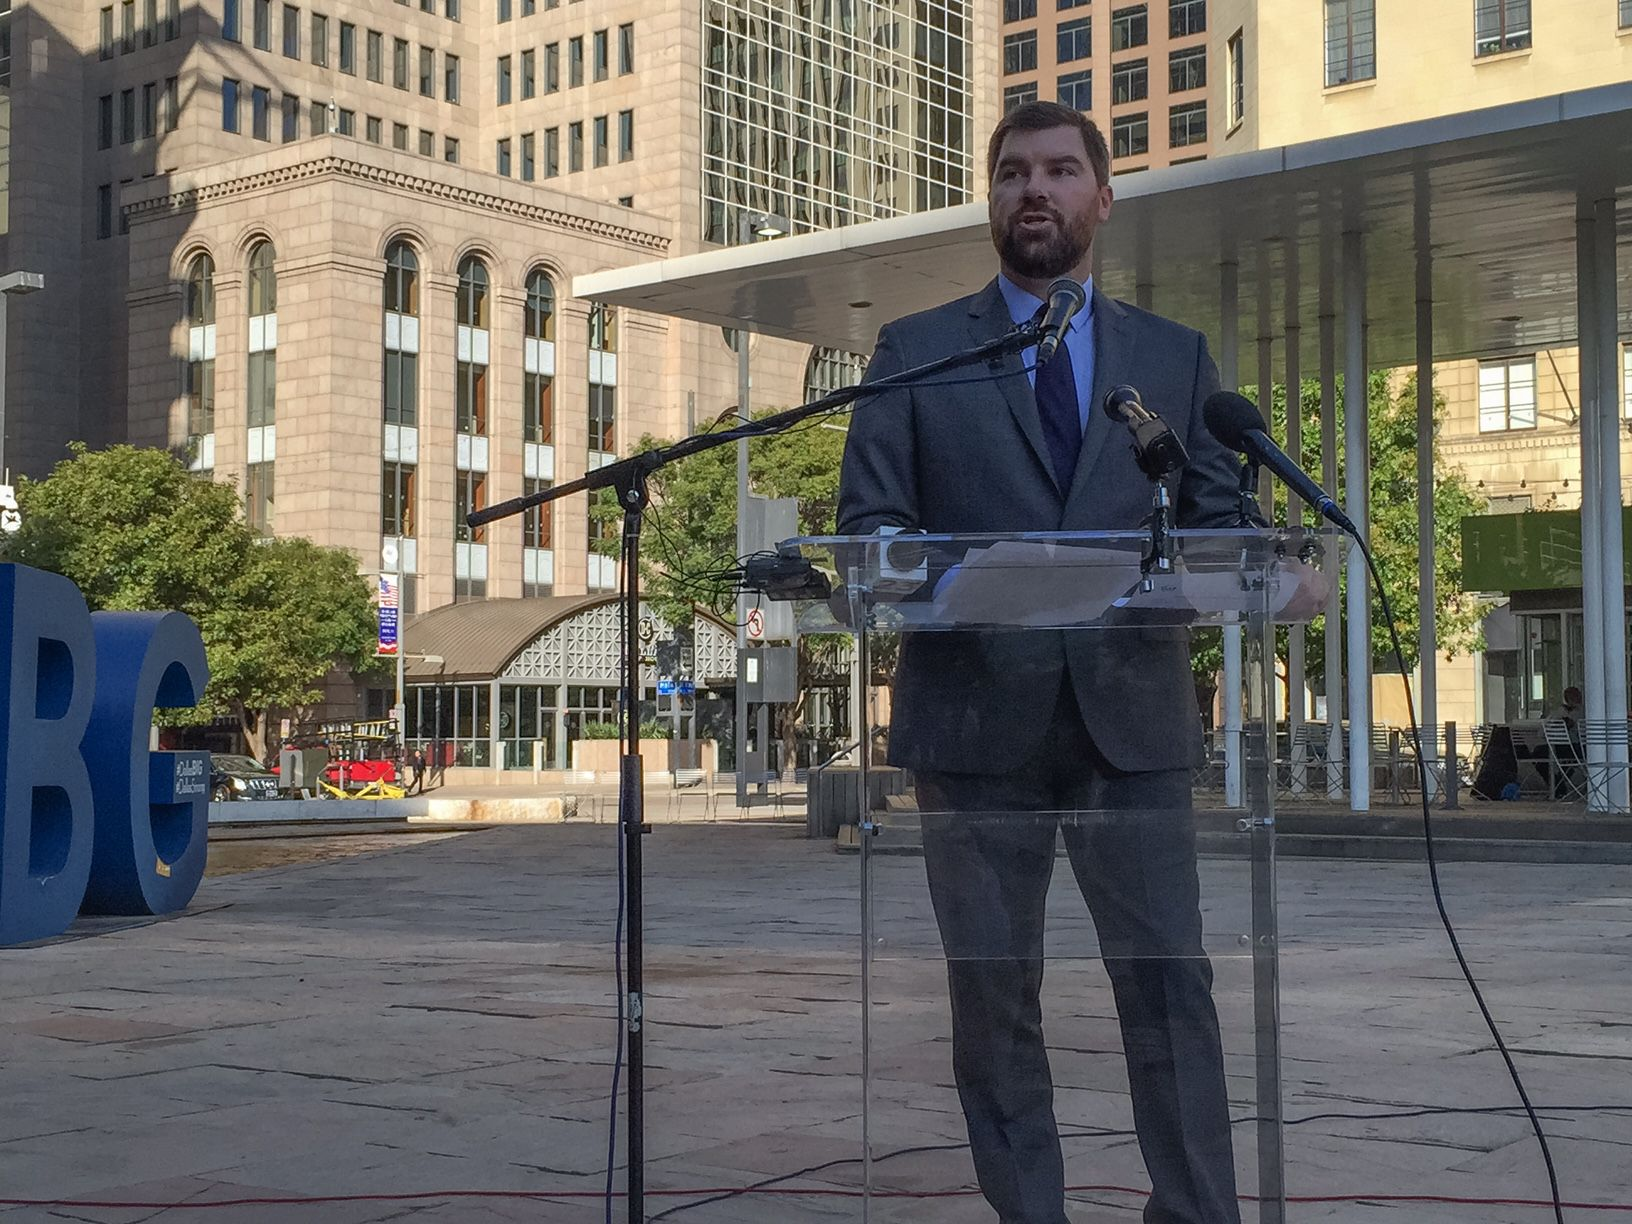 Josh McGee, a vice president at the Laura and John Arnold Foundation, says Dallas needs to fix its pension system or face serious consequences during a news conference on Oct. 27, 2016, in Main Street Garden.